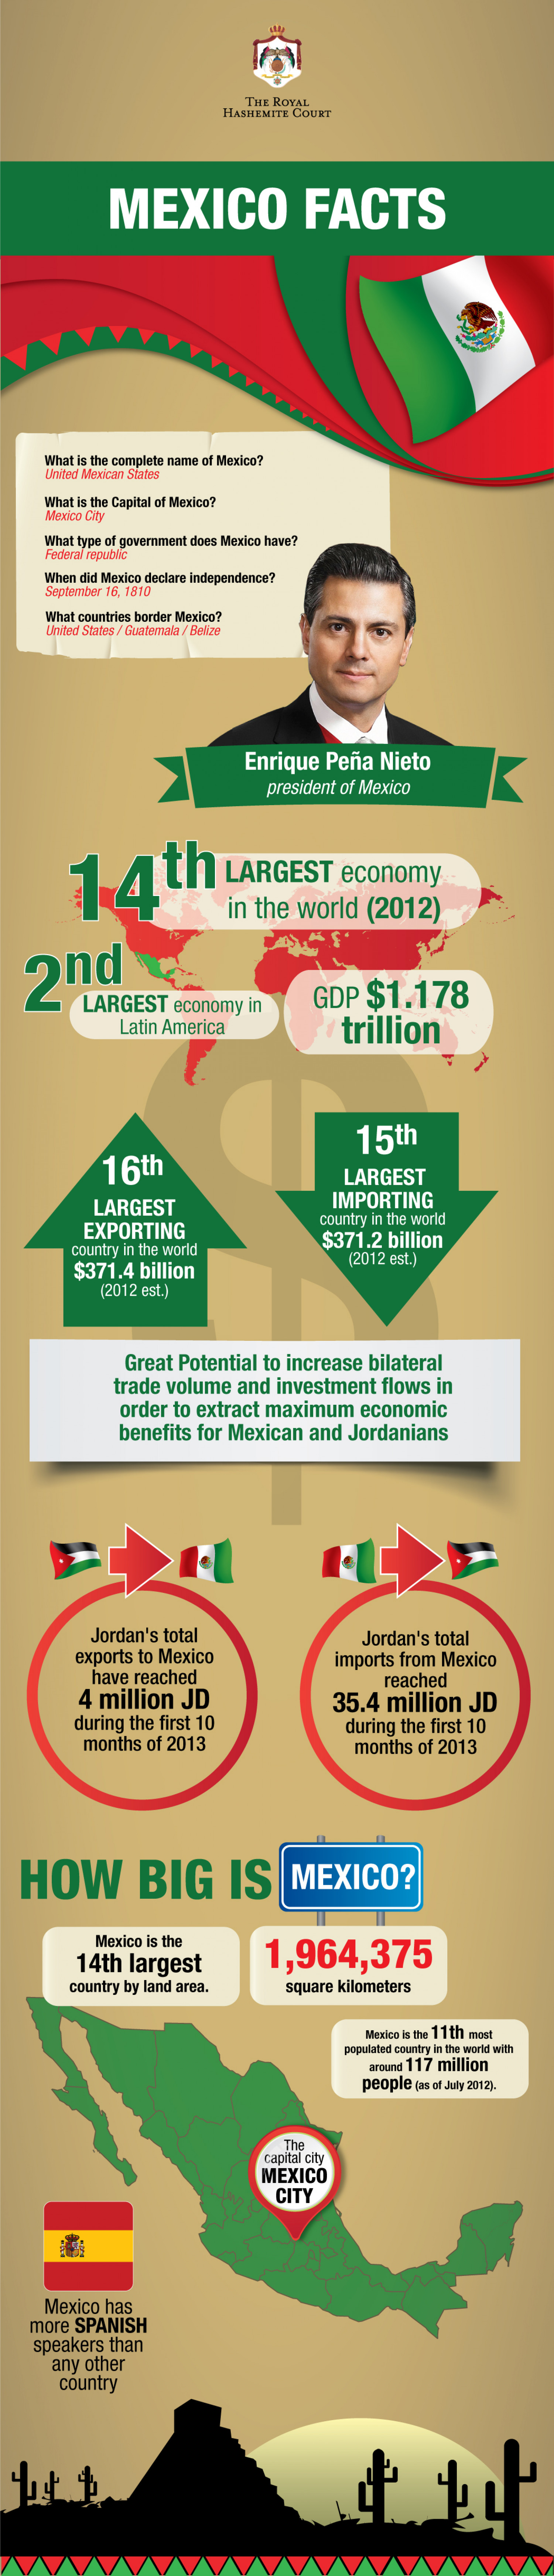 Mexico Facts  Infographic